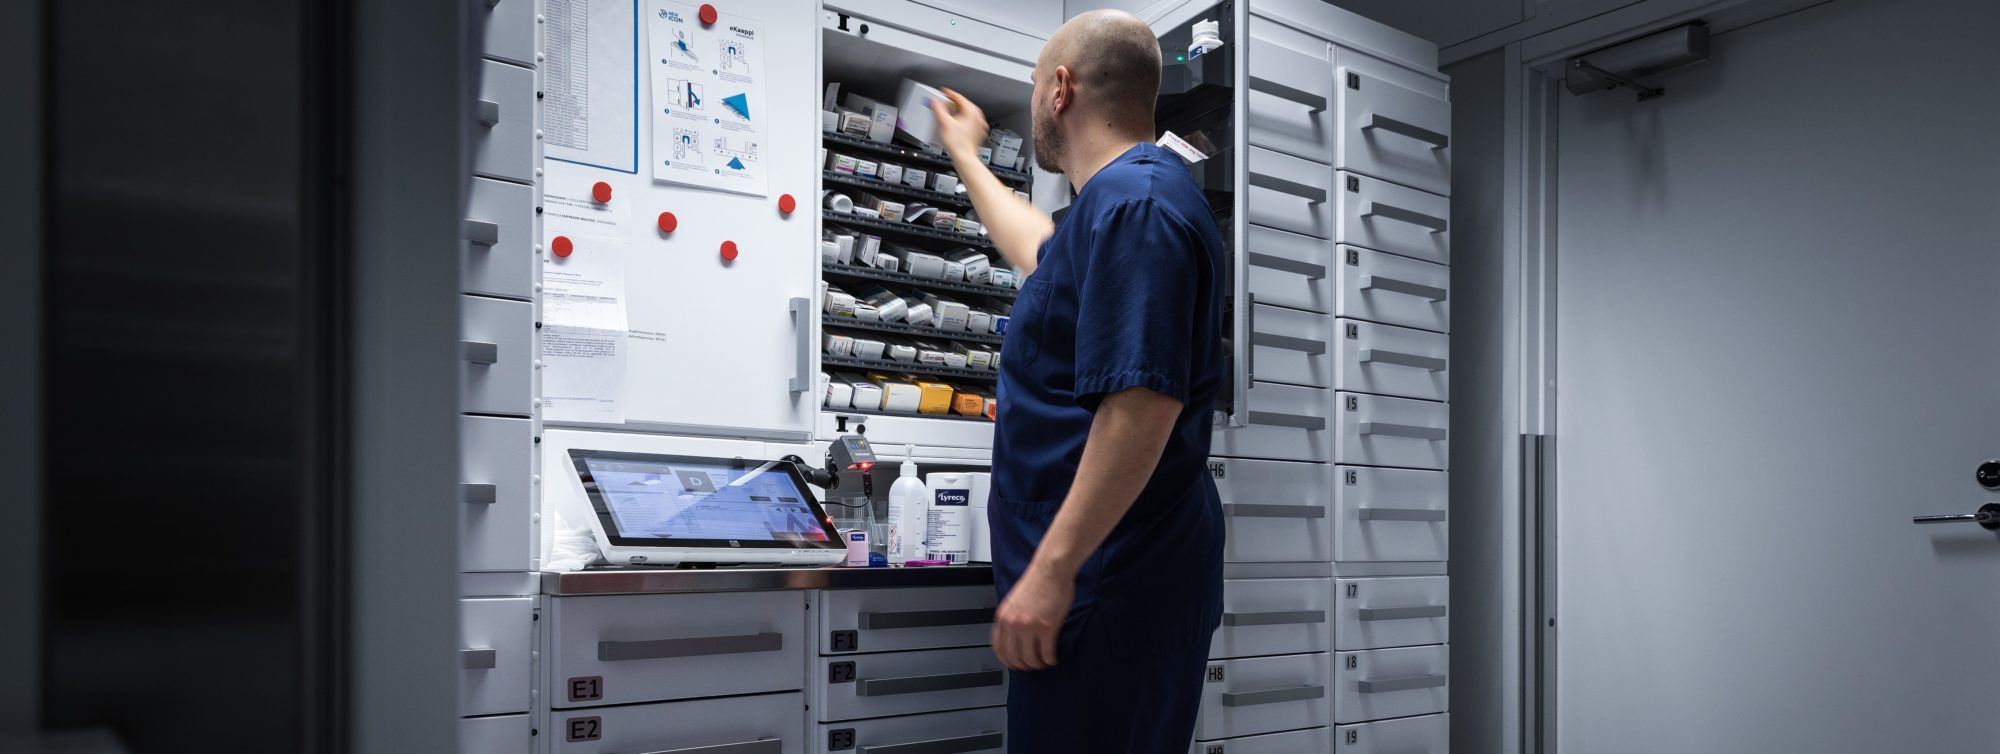 Press release: NewIcon is organising a share issue – the goal is to raise a good slice of the pharmacy automation market worth more than 9 billion euros